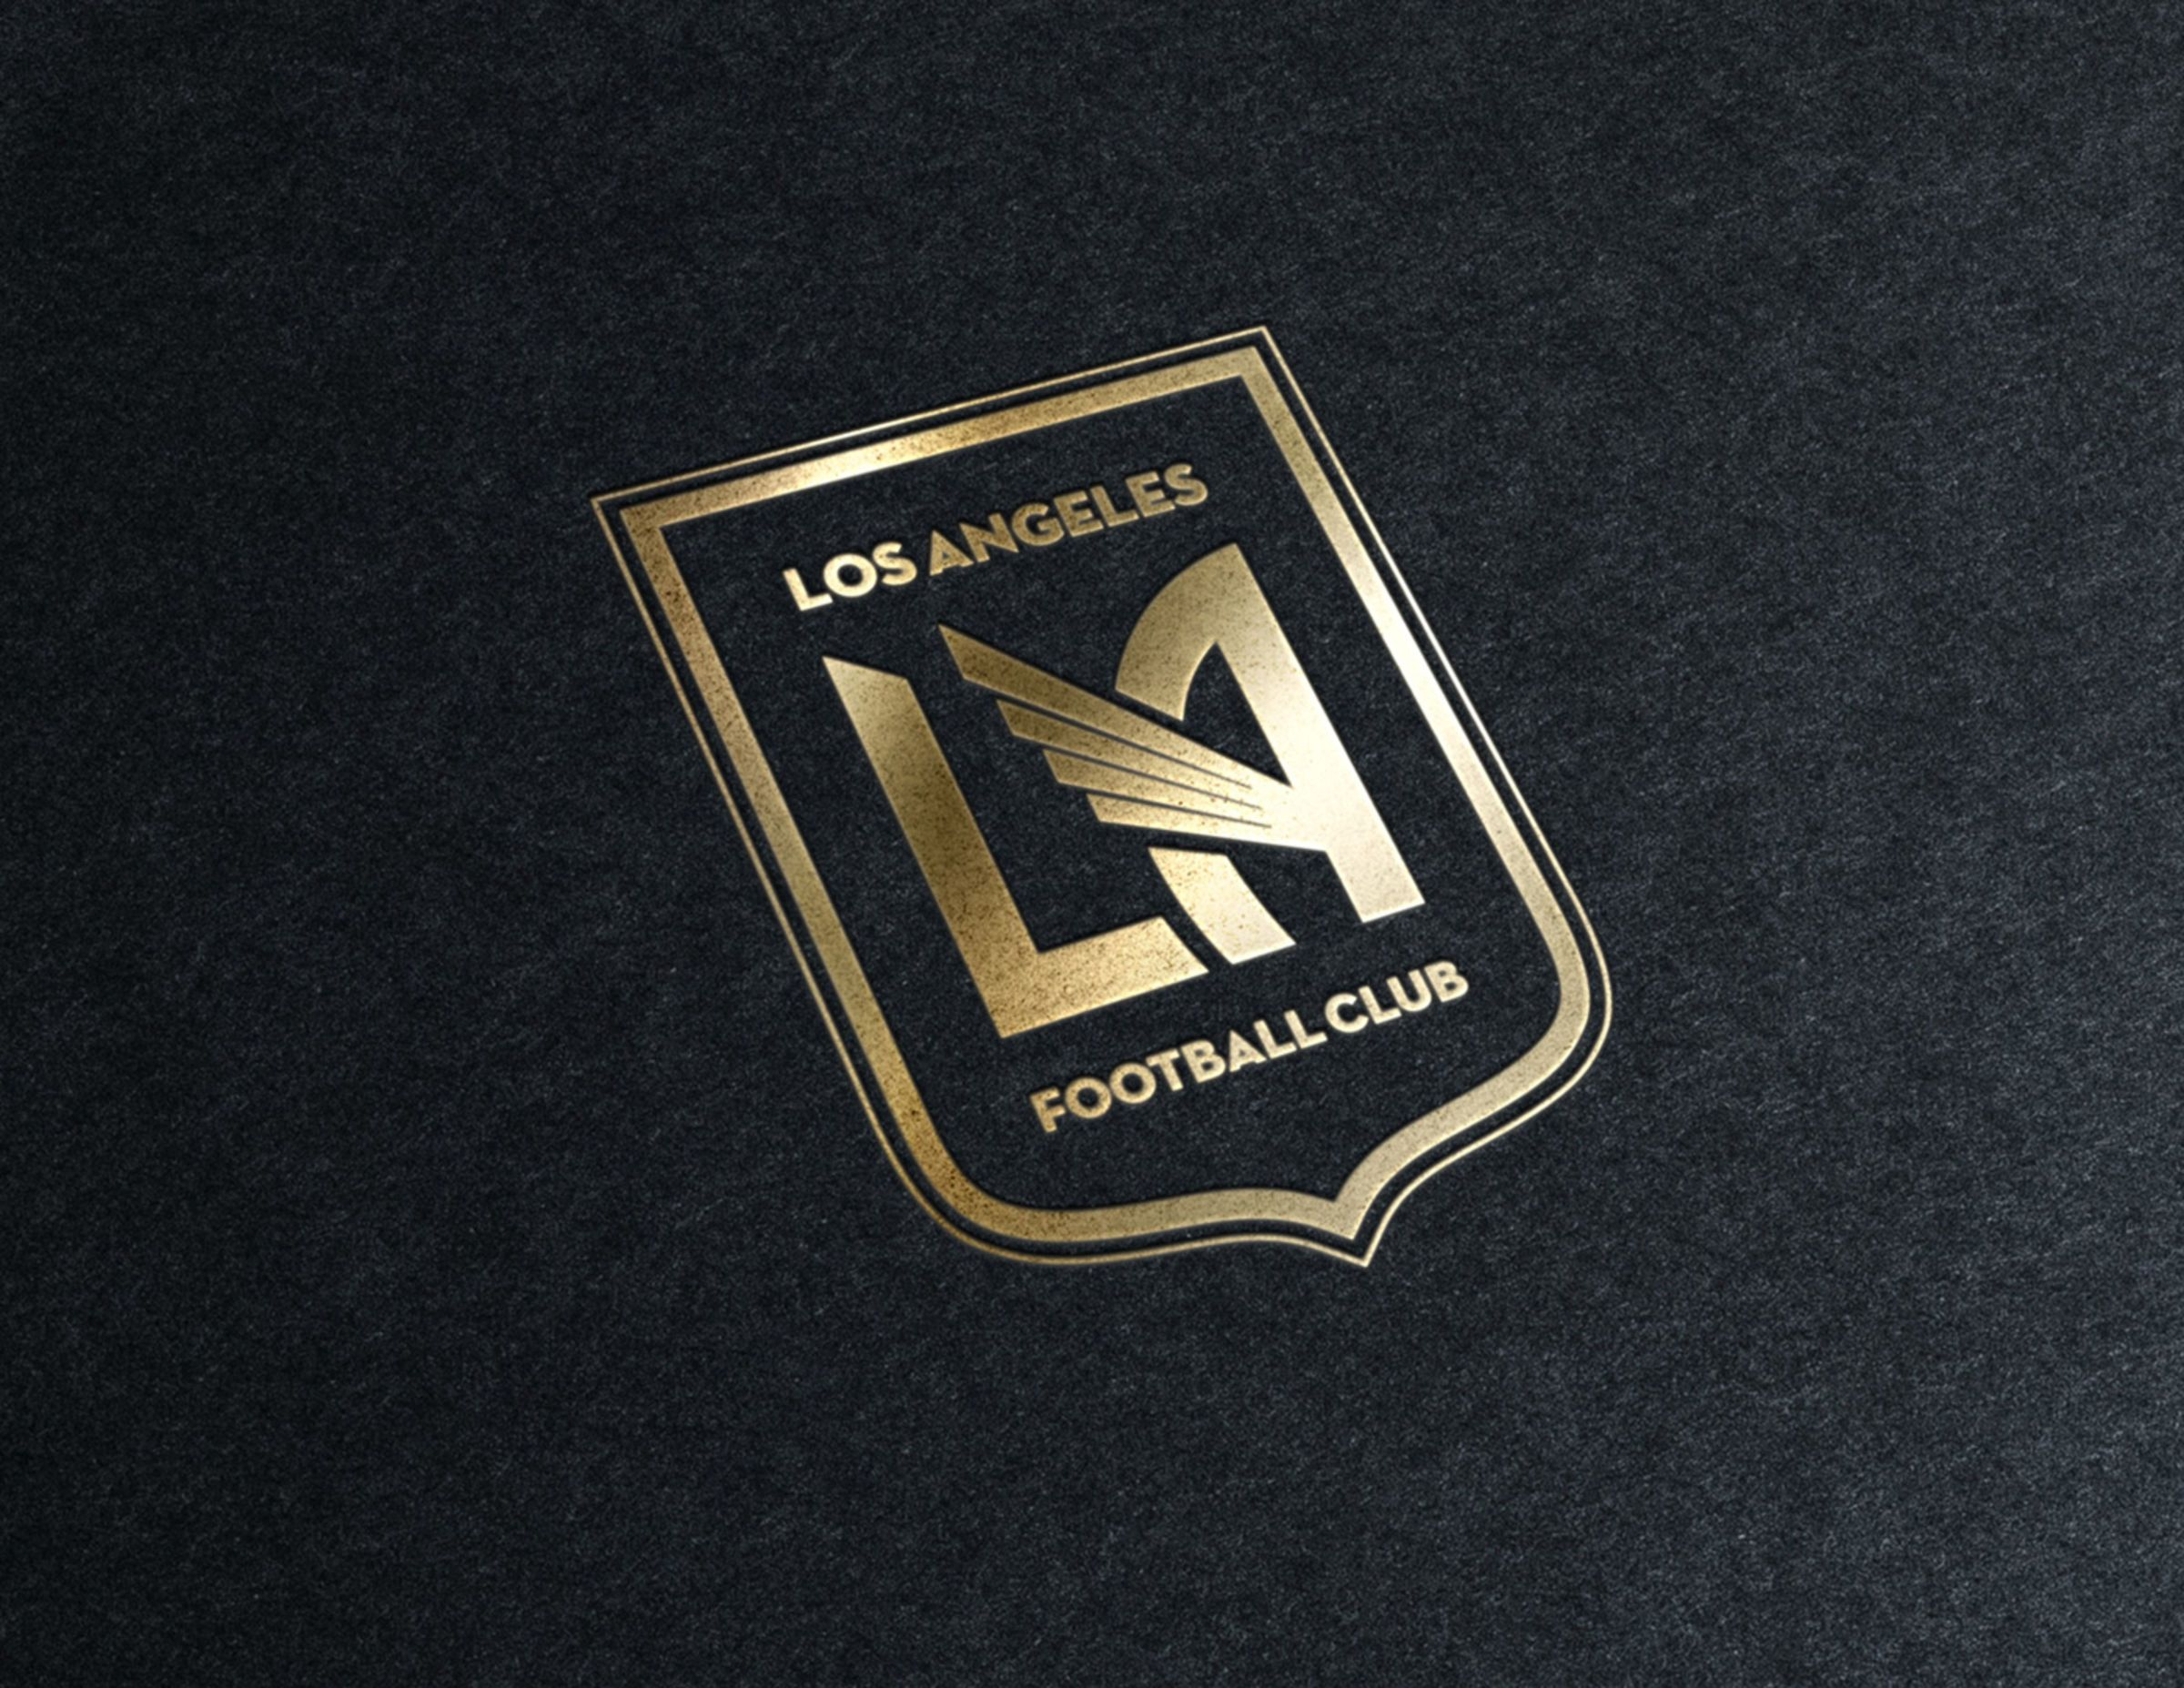 Lafc Unveiled An Impossibly Cool Crest Los Angeles Football Club Soccer Club Soccer